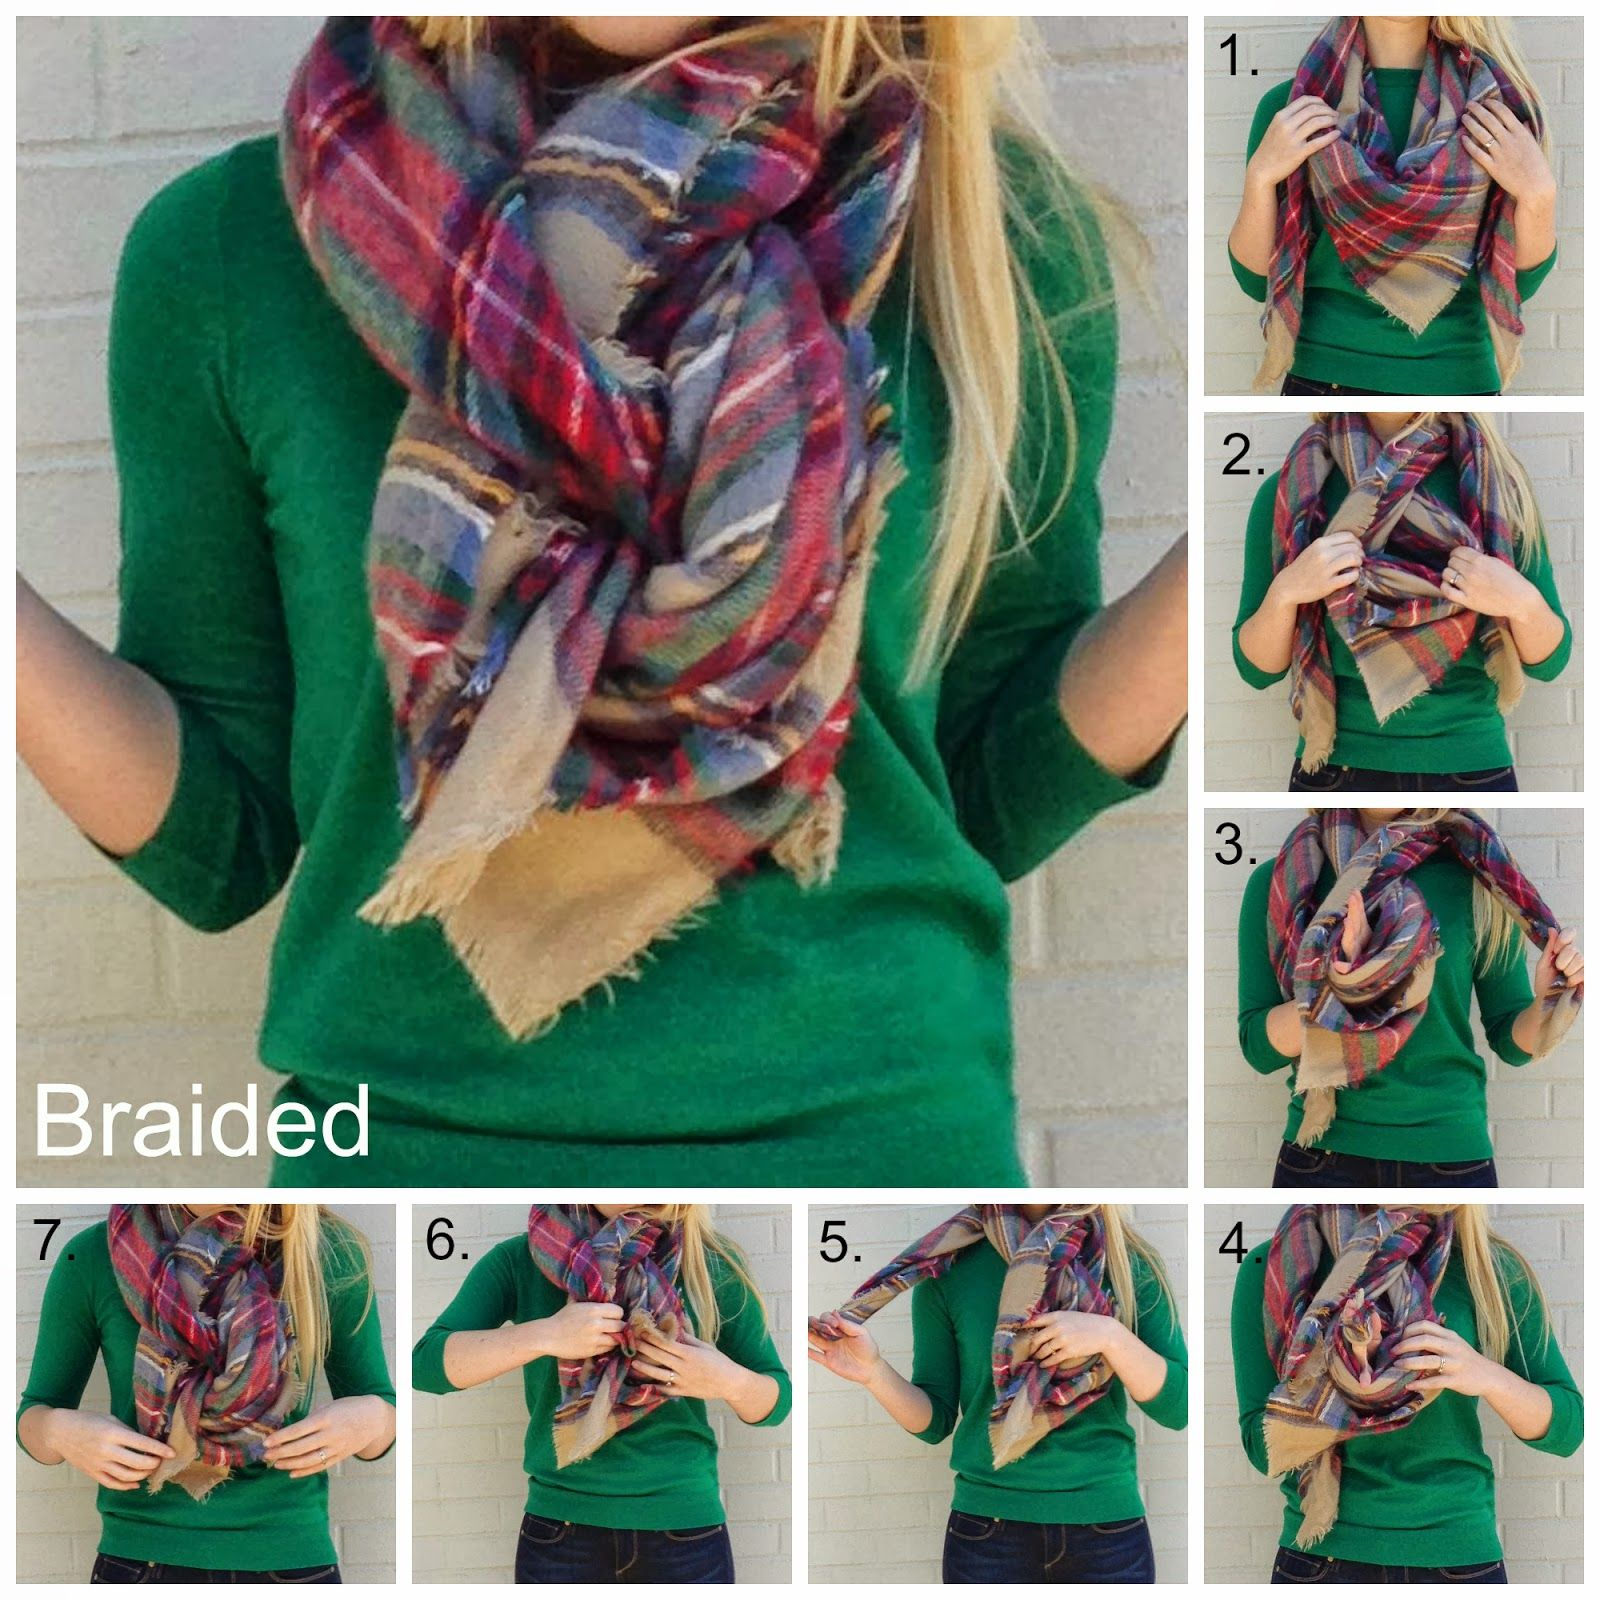 20 style tips on how to wear blanket scarves | sassy, classy and